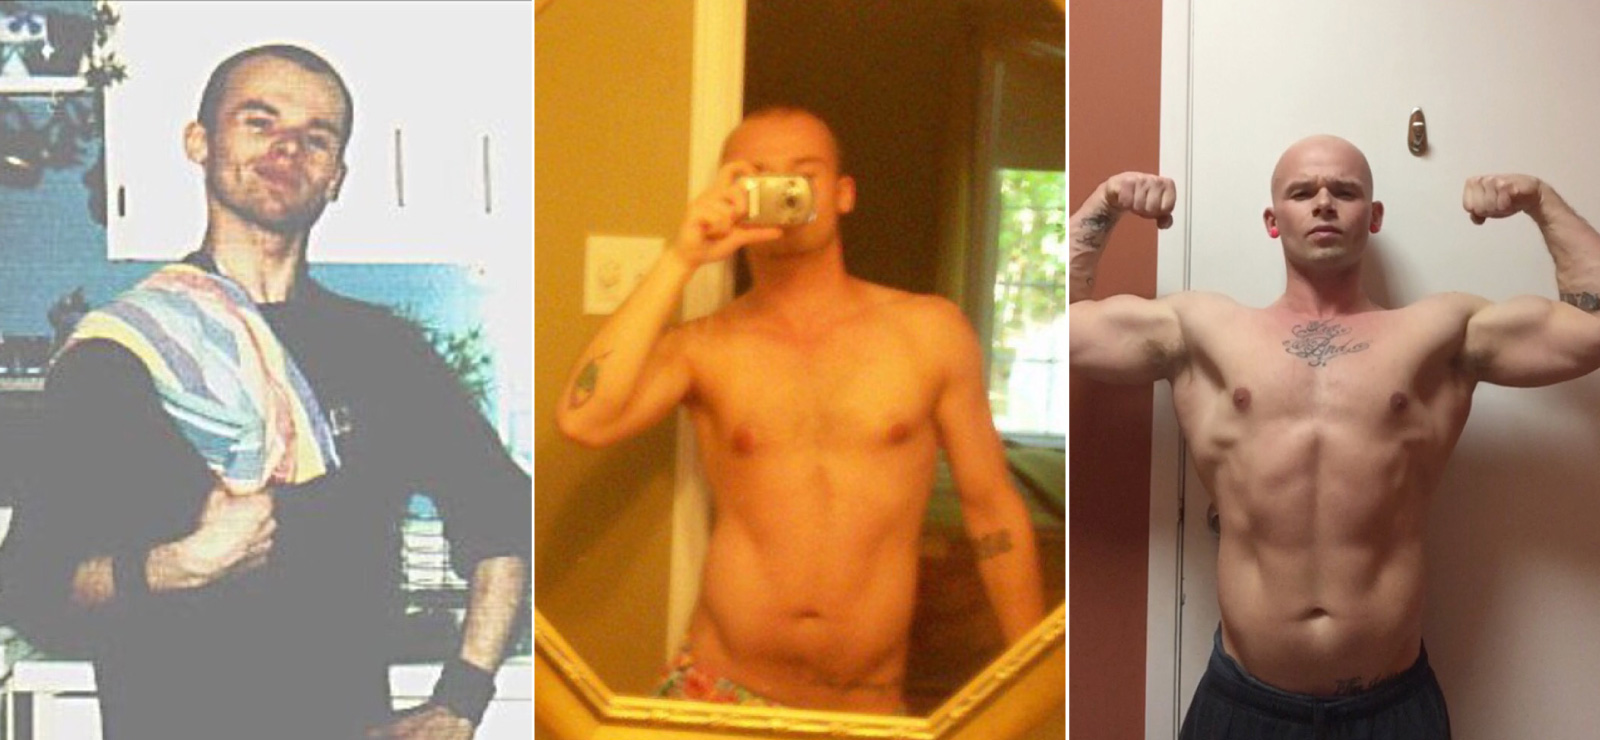 Coach Ty - from 119 lbs to 160 lbs